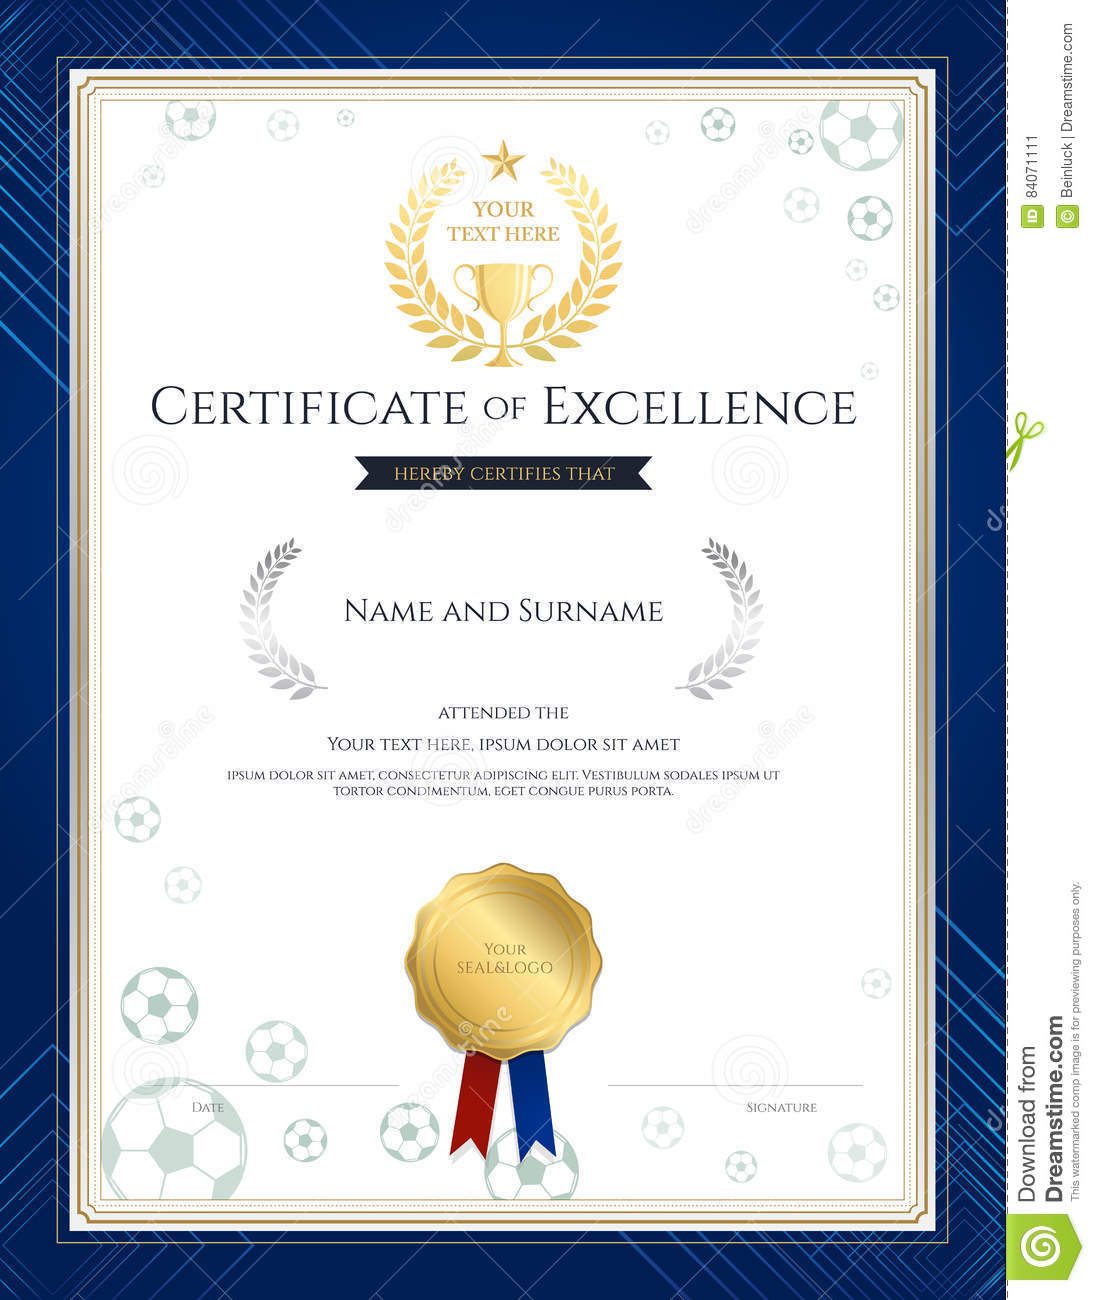 Portrait certificate of excellence template in sport theme for Certificate template word portrait